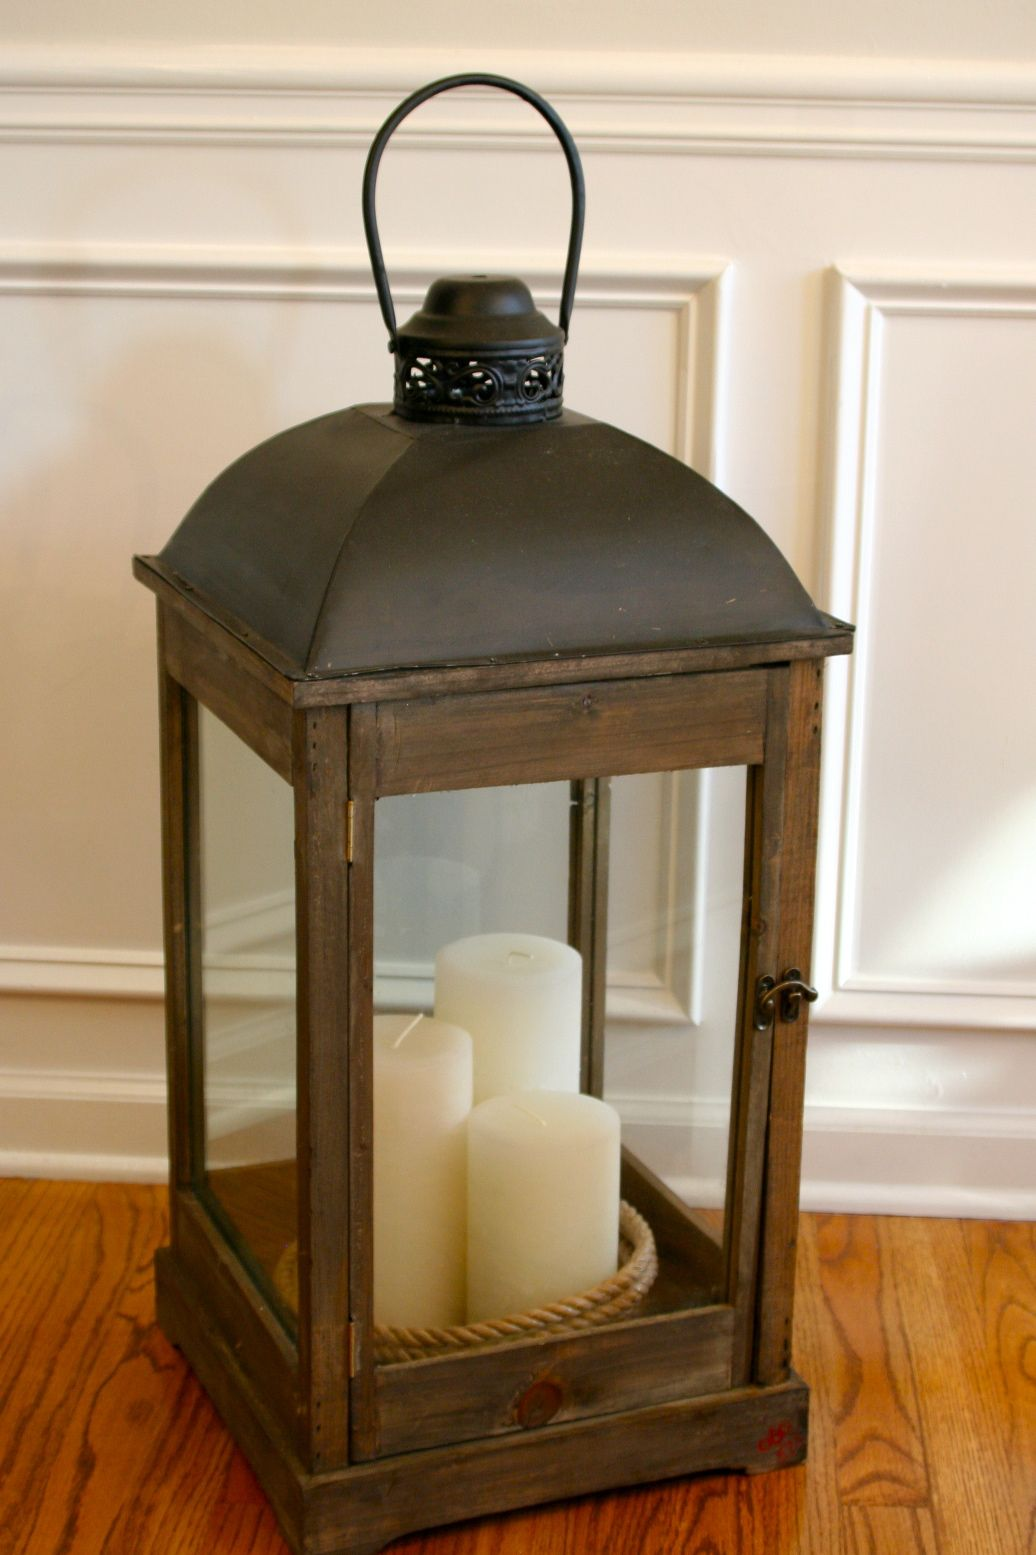 premium selection 058f8 d1277 candles in oversized lantern | Home | Lanterns decor ...